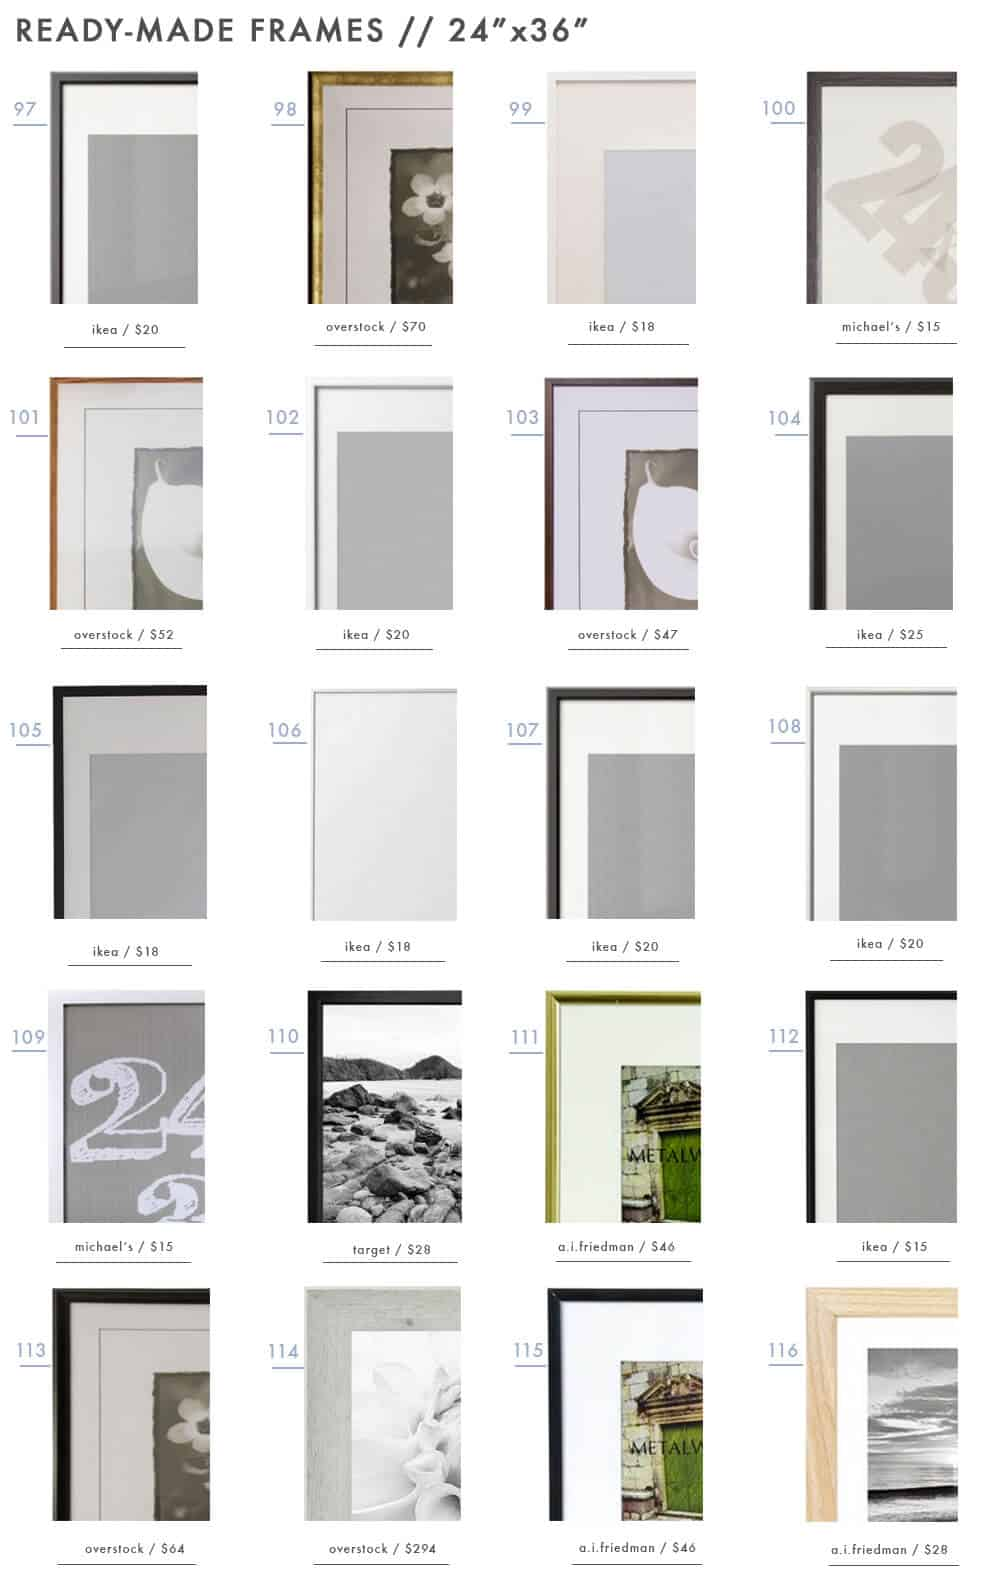 gallery-frames-ready-made-picture-photo-frames-emily-henderson-design-roundup-24x36